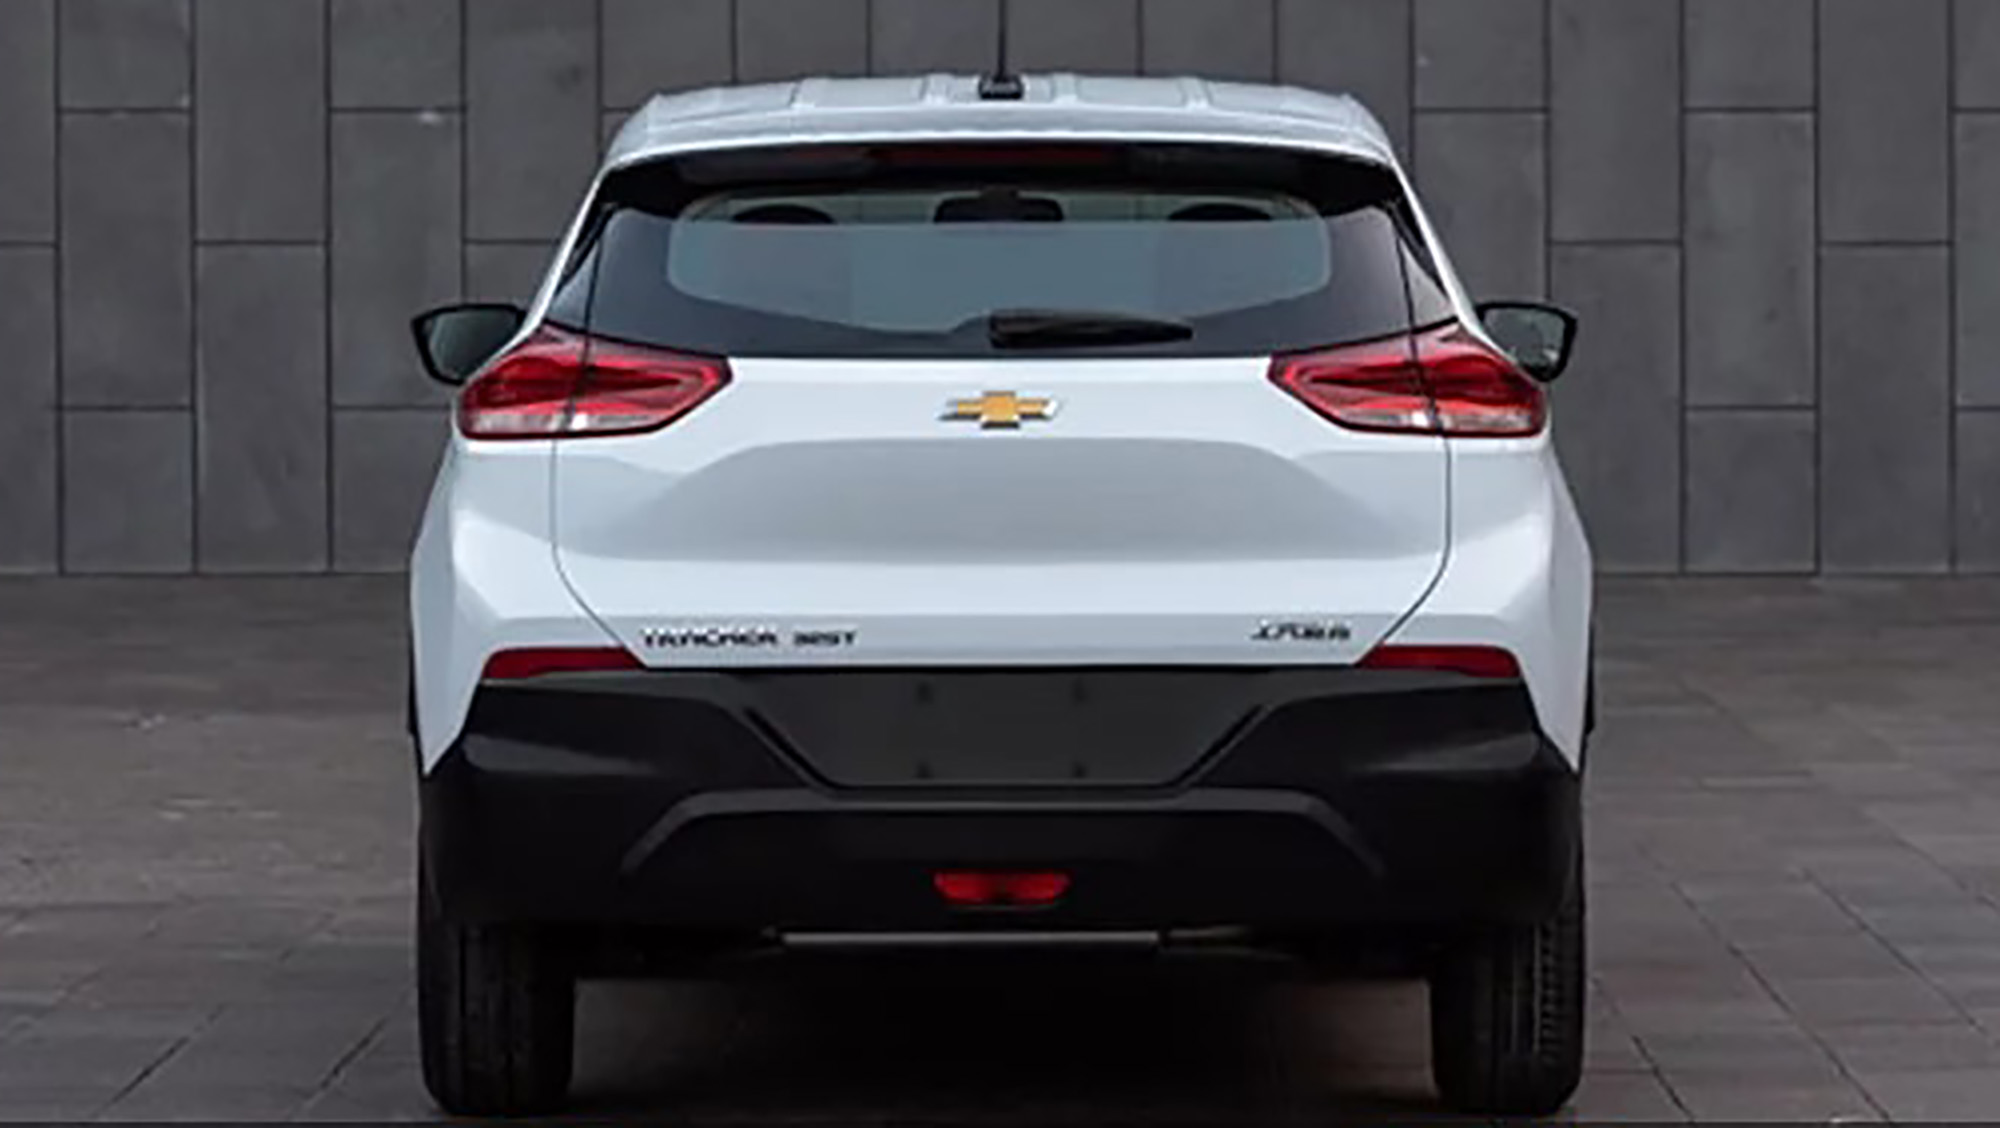 2020 Chevy Trax Review.2020 Chevrolet Tracker Leaked Is This The New Holden Trax